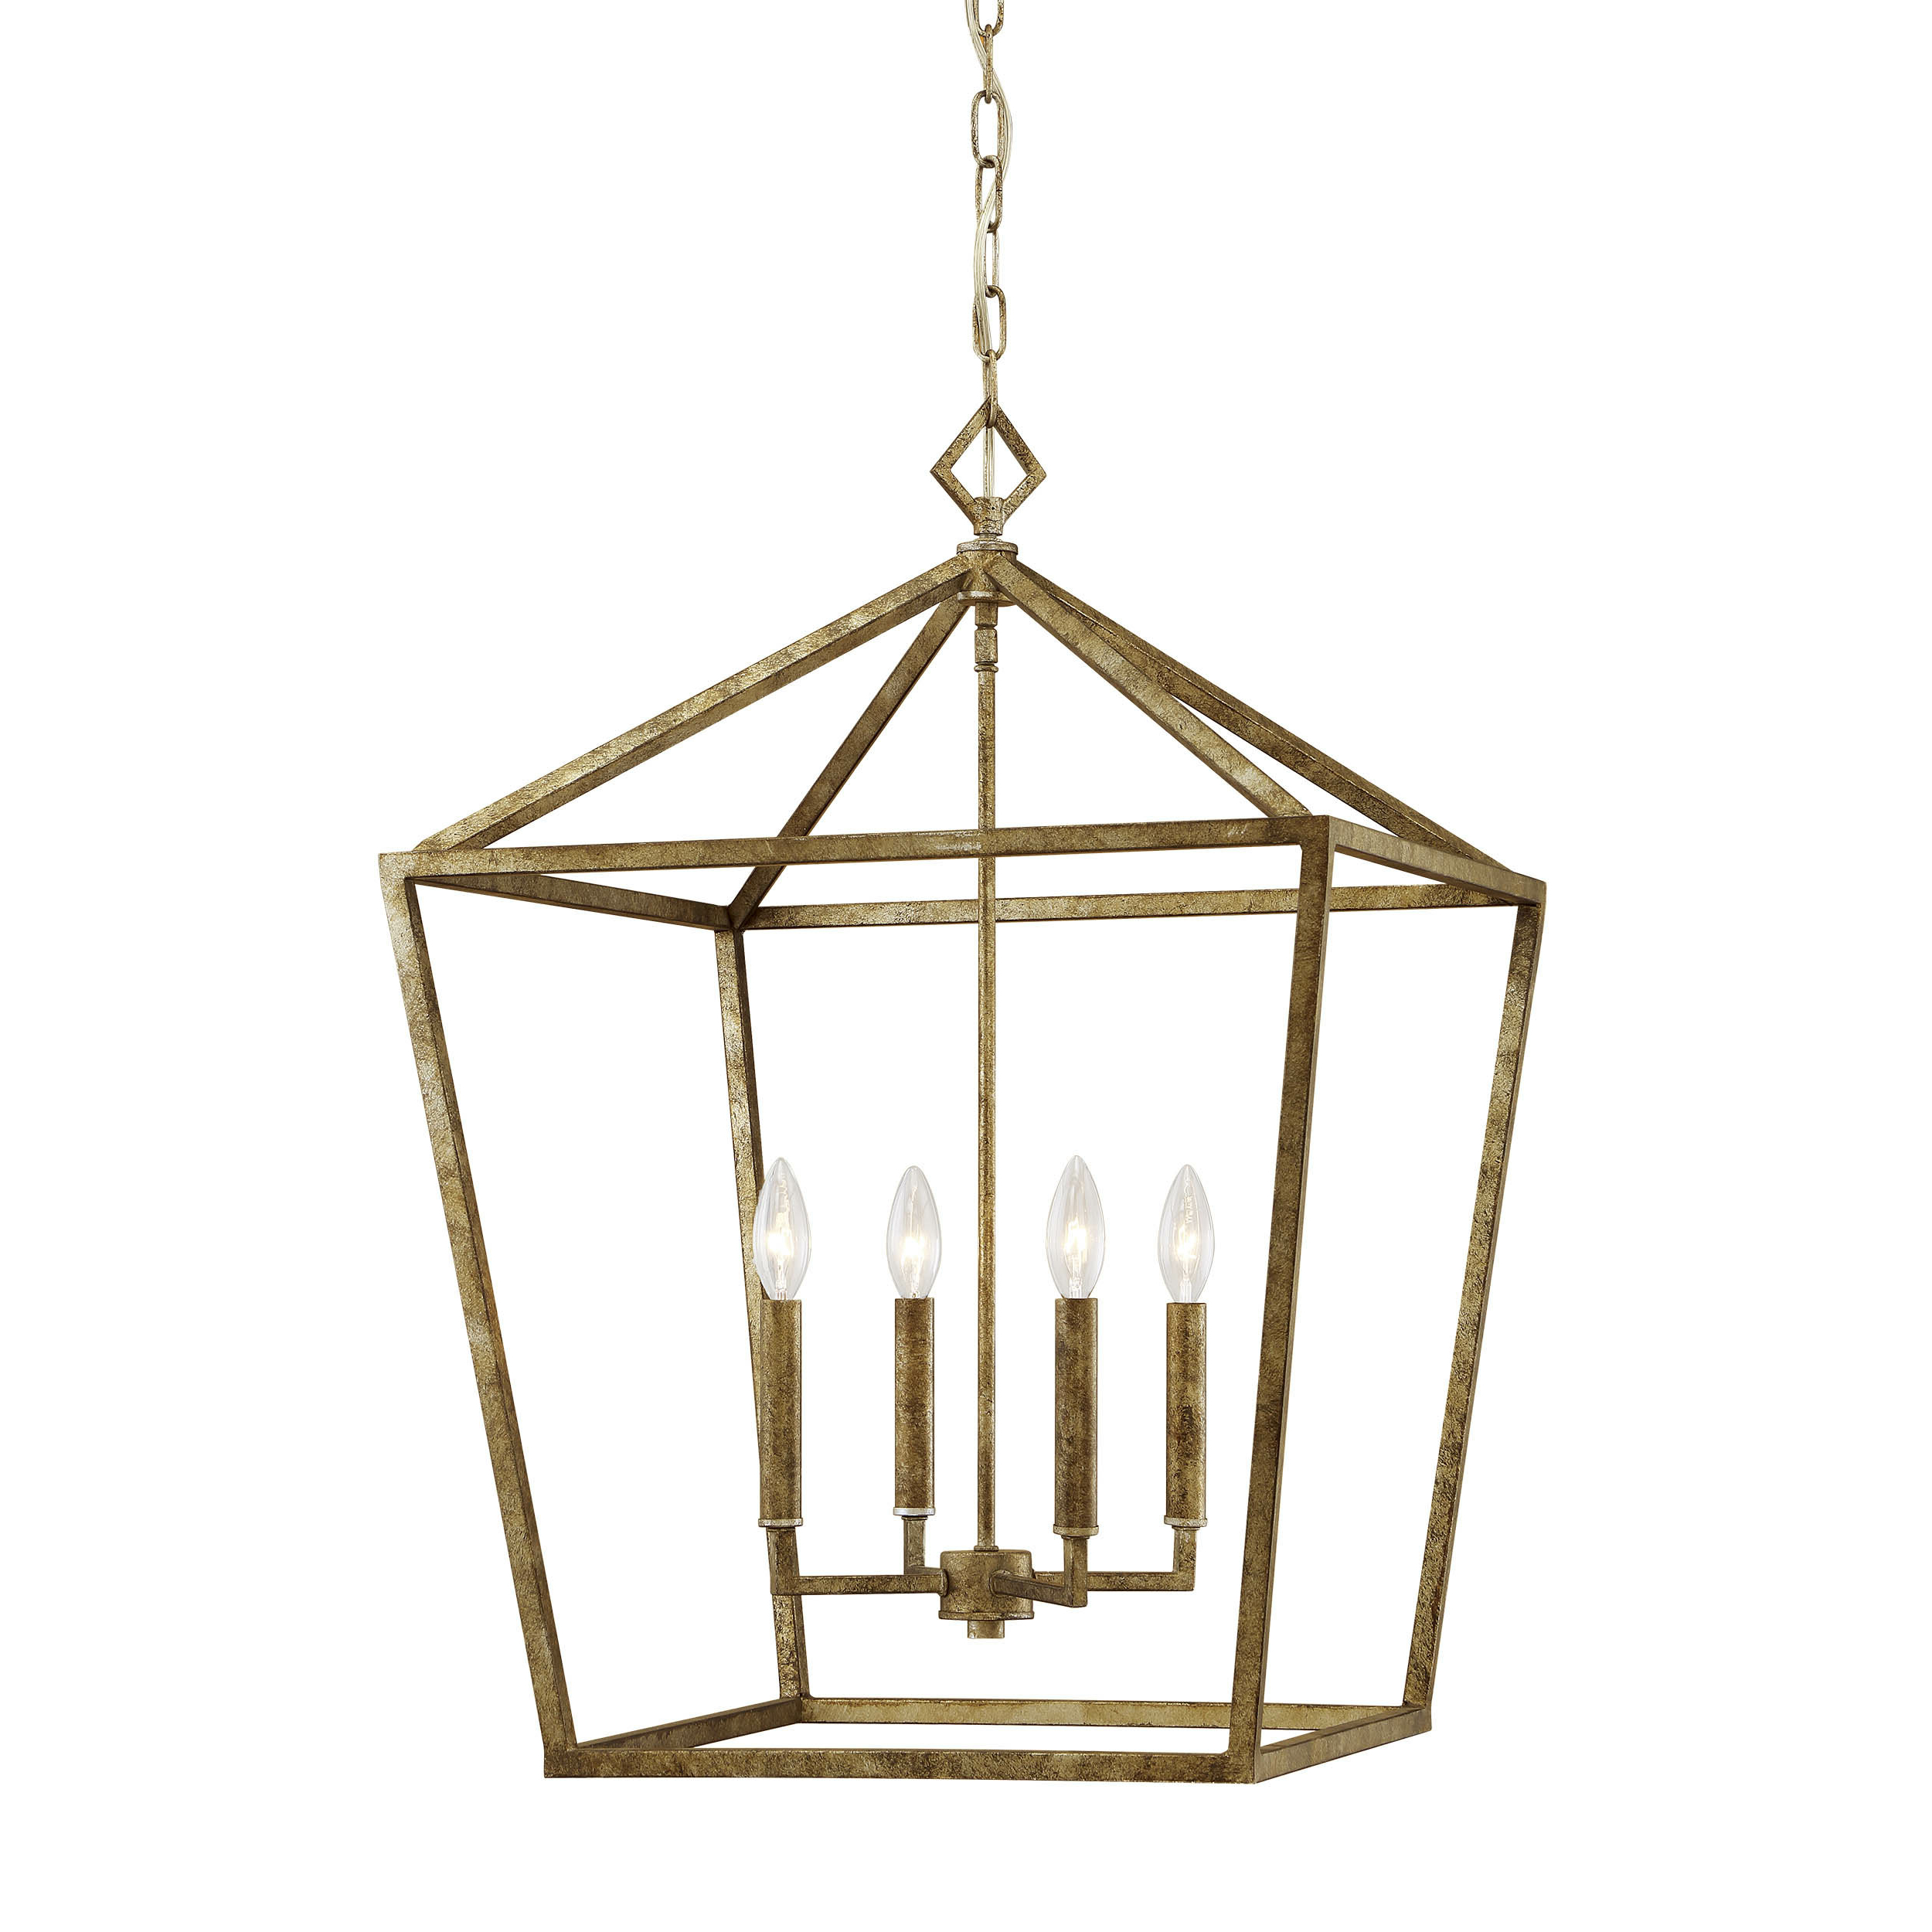 Varnum 4 Light Lantern Pendant Pertaining To Most Up To Date Isoline 2 Light Lantern Geometric Pendants (View 21 of 25)